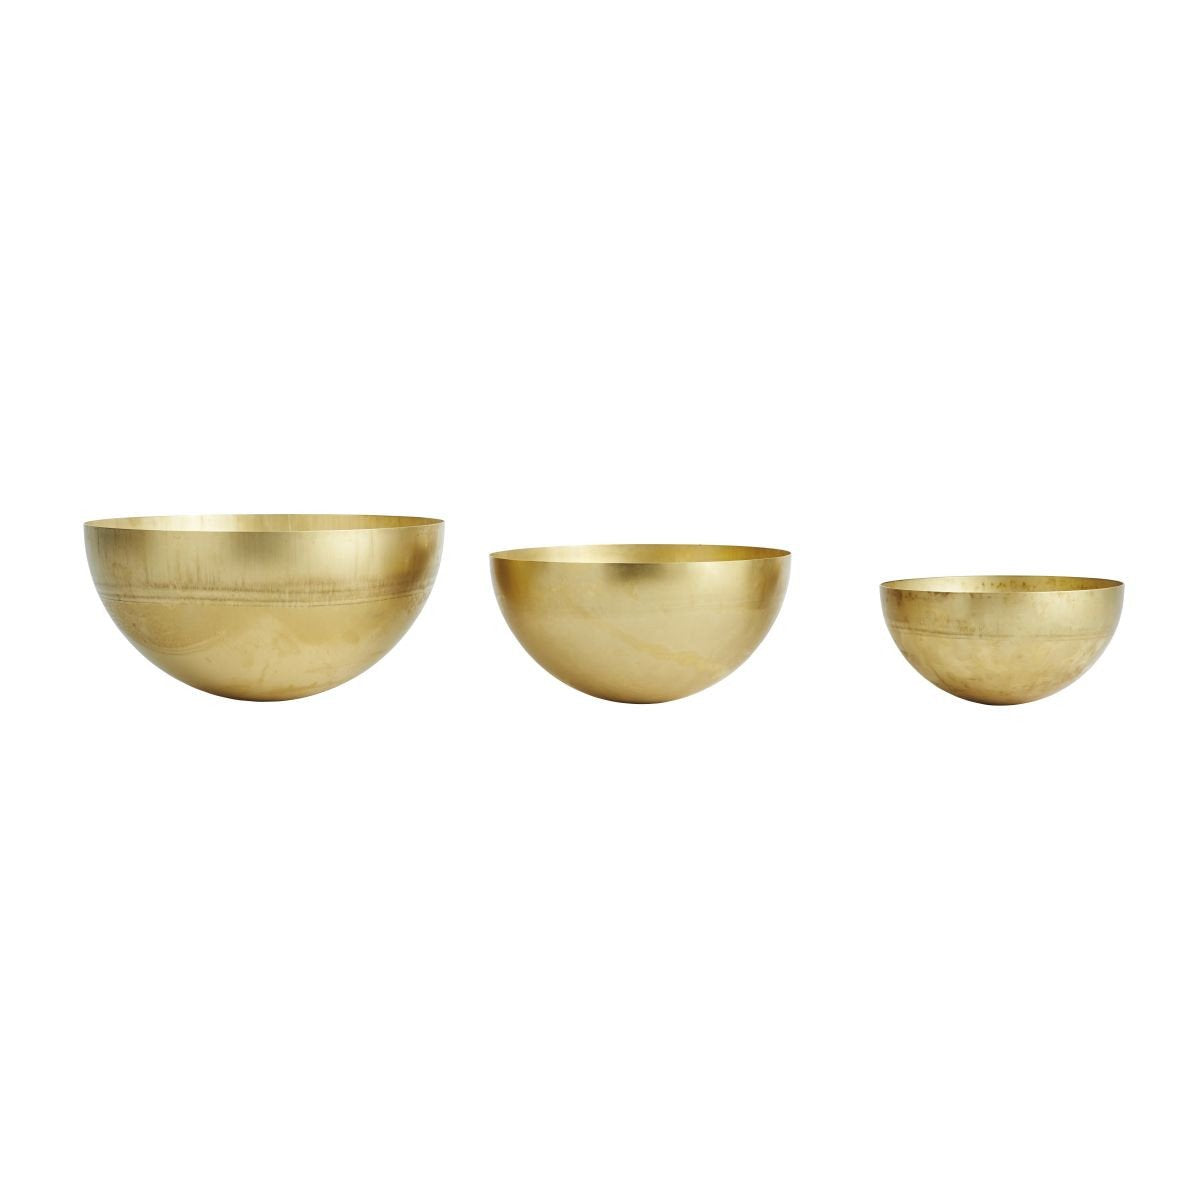 Large Brass Bowl design by OYOY